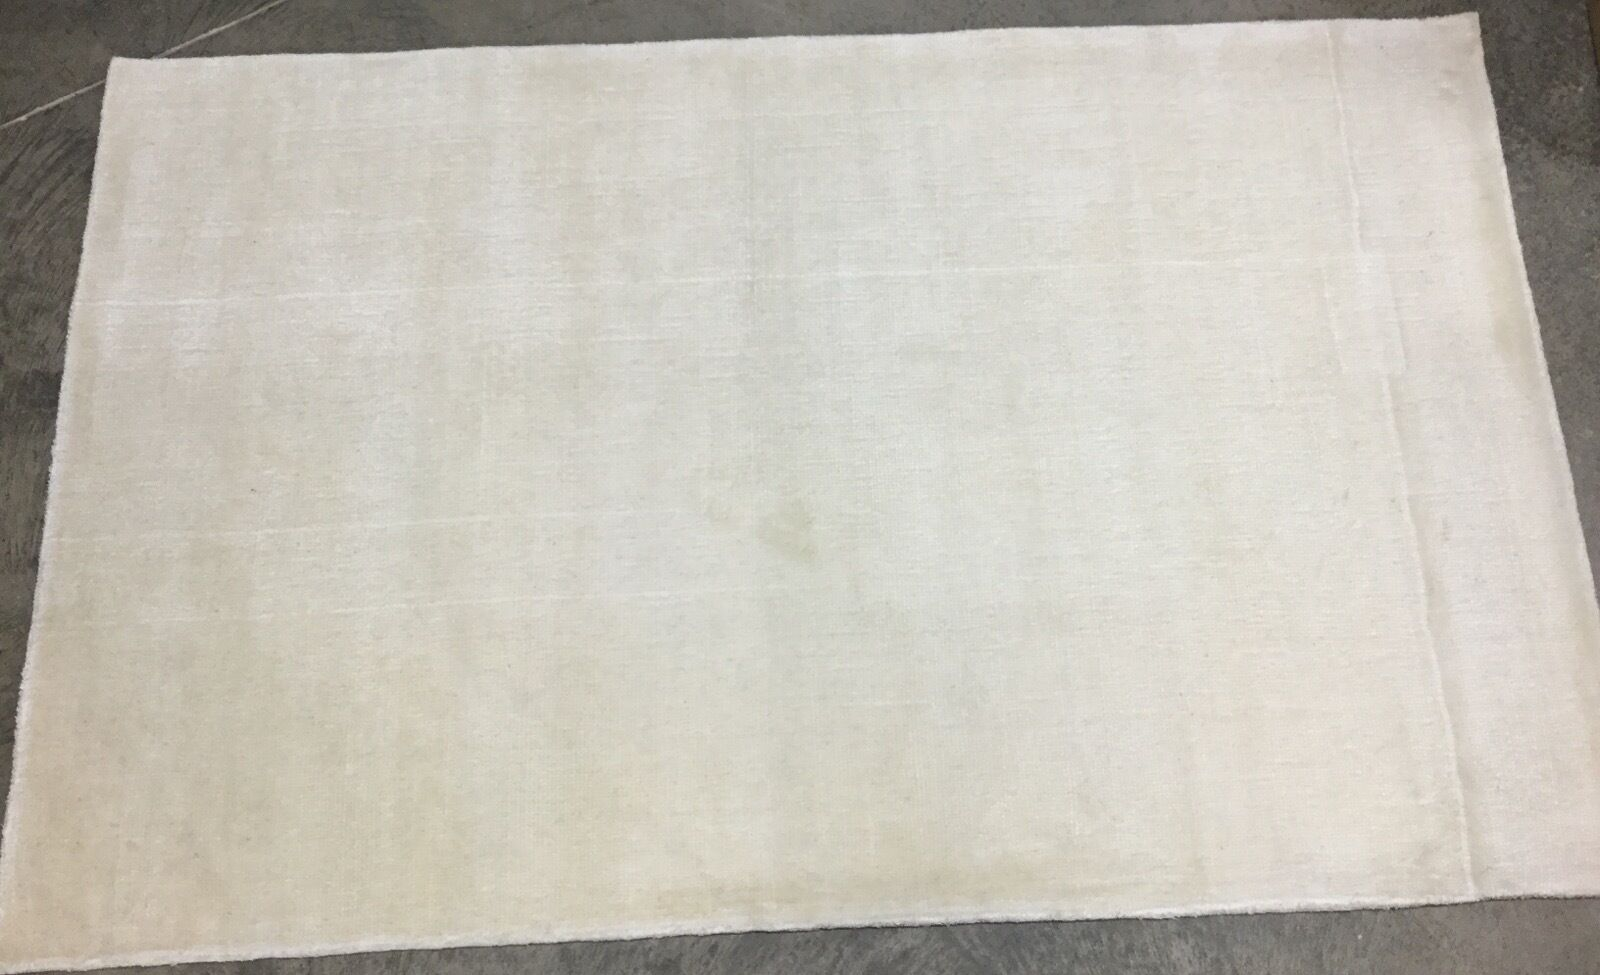 Pottery Barn Kids Ivory Dalton Rug 5x8 Authentic 1 Of 3only 2 Available